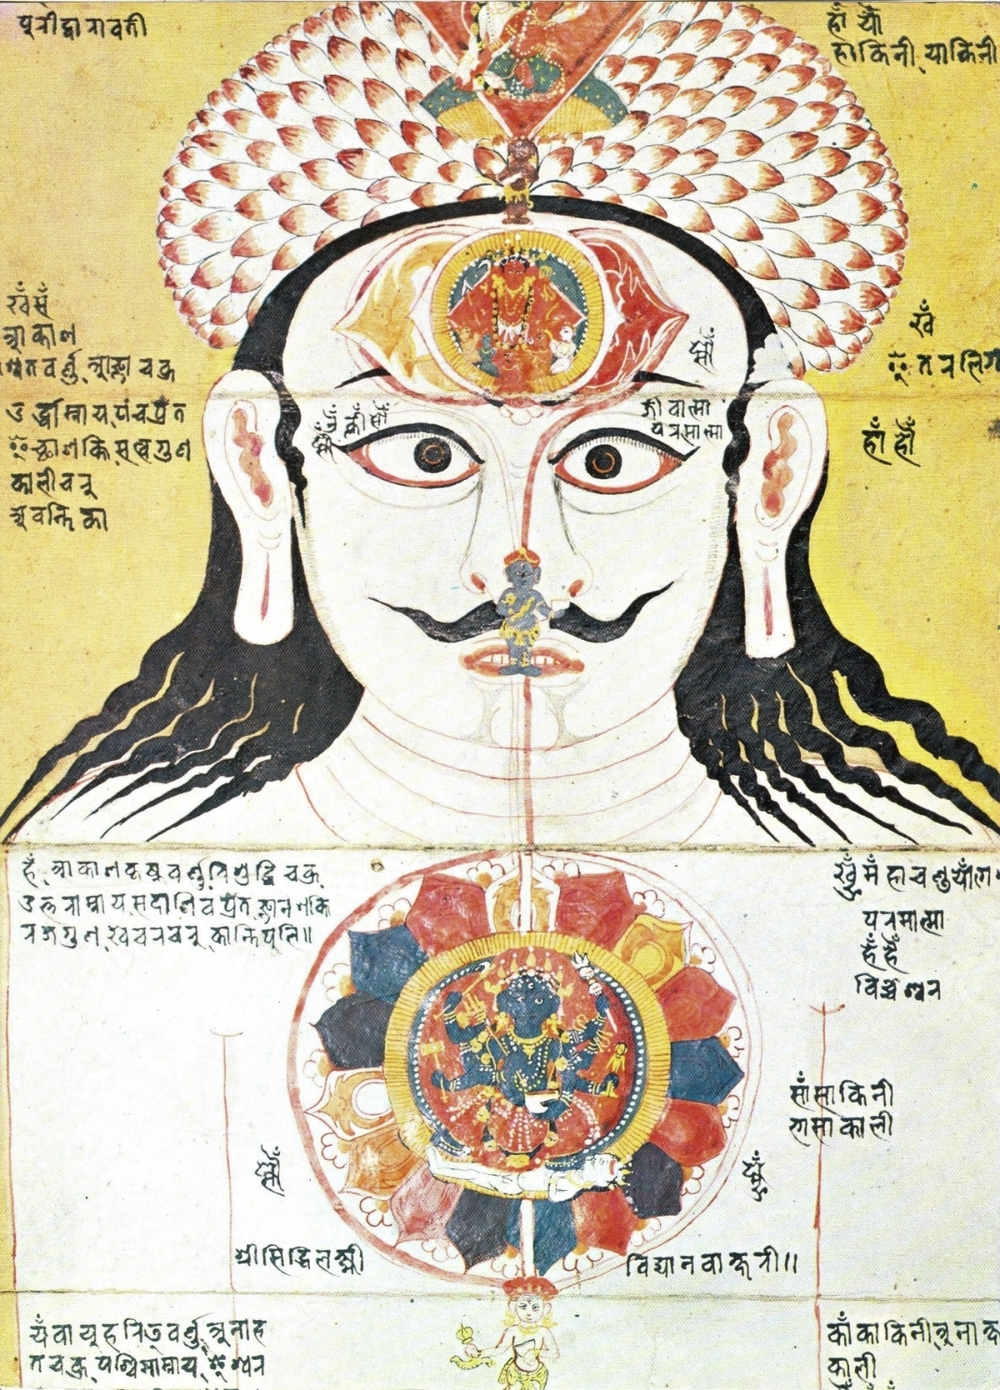 A 17th-century image of several chakras from Nepāl.